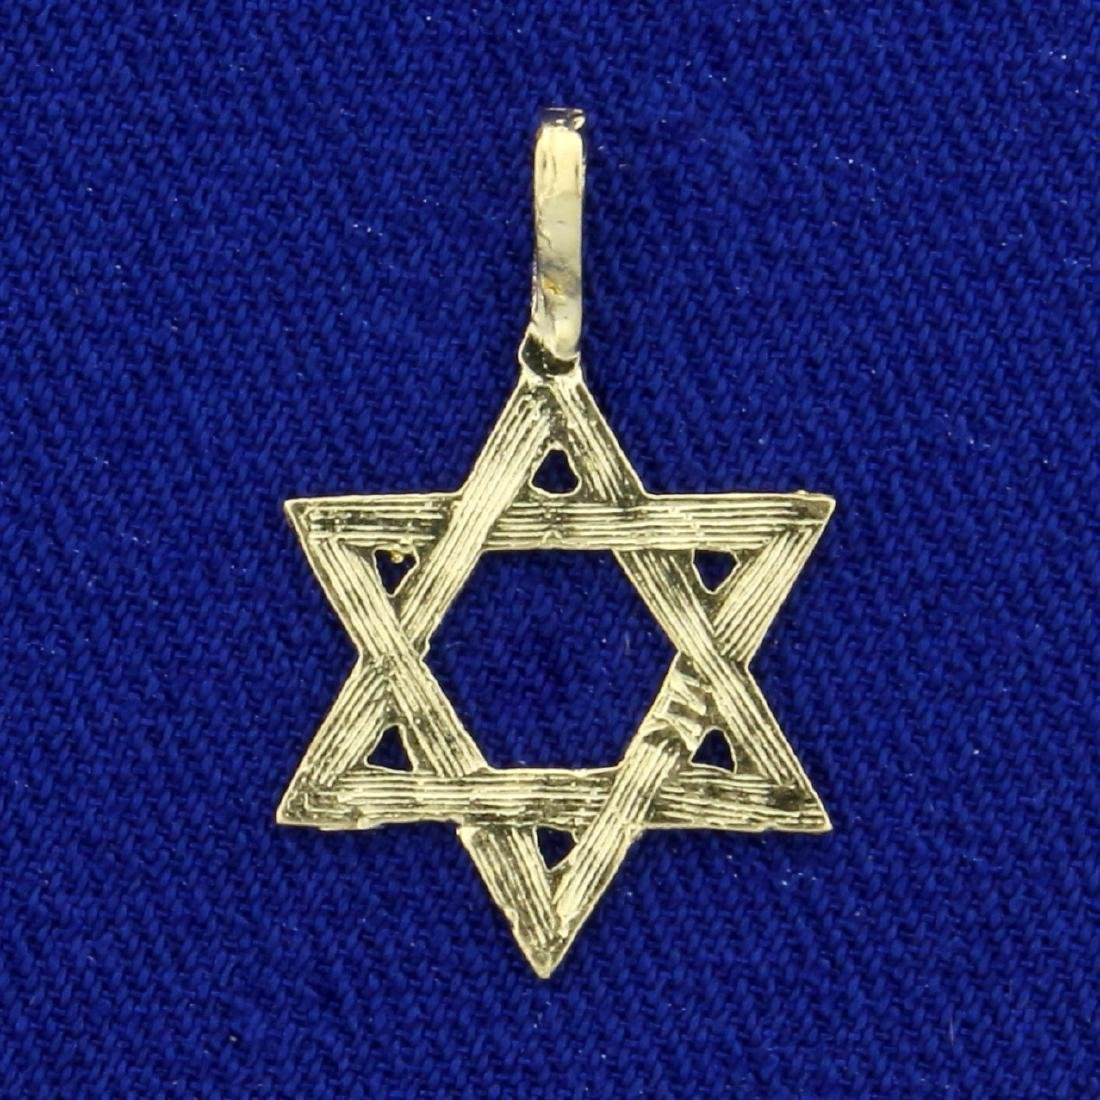 Diamond Cut Star of David Pendant in 14K Yellow Gold - 2